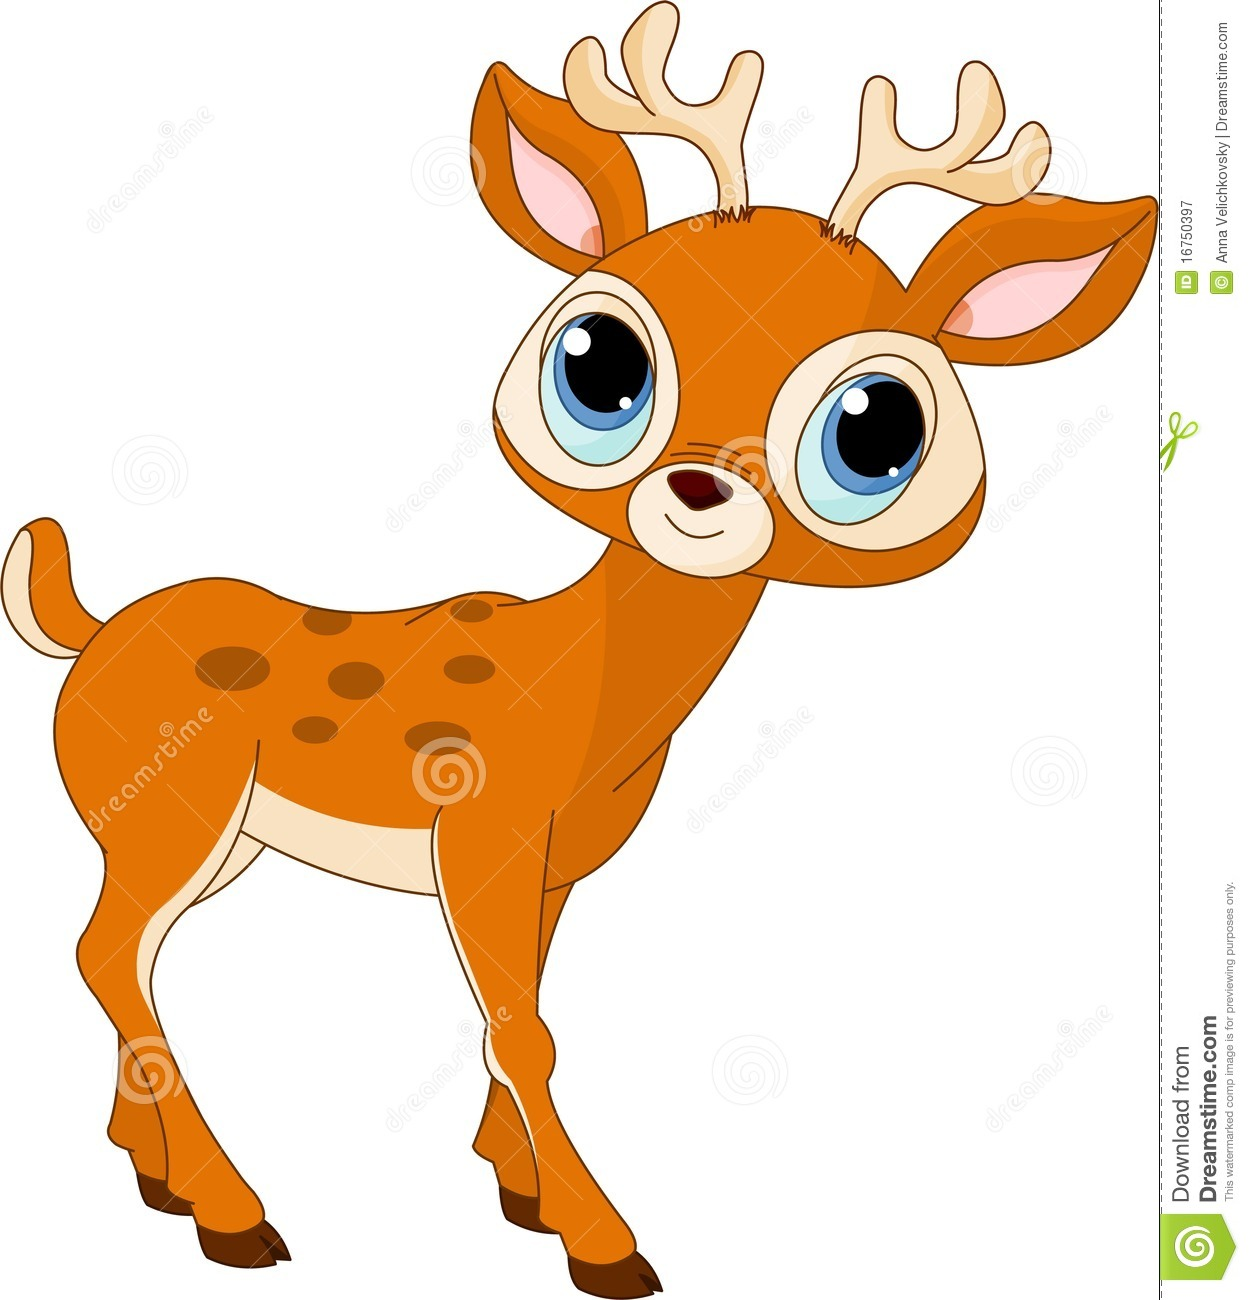 Baby buck clipart picture free library Cute Baby Deer Clipart | Clipart Panda - Free Clipart Images picture free library